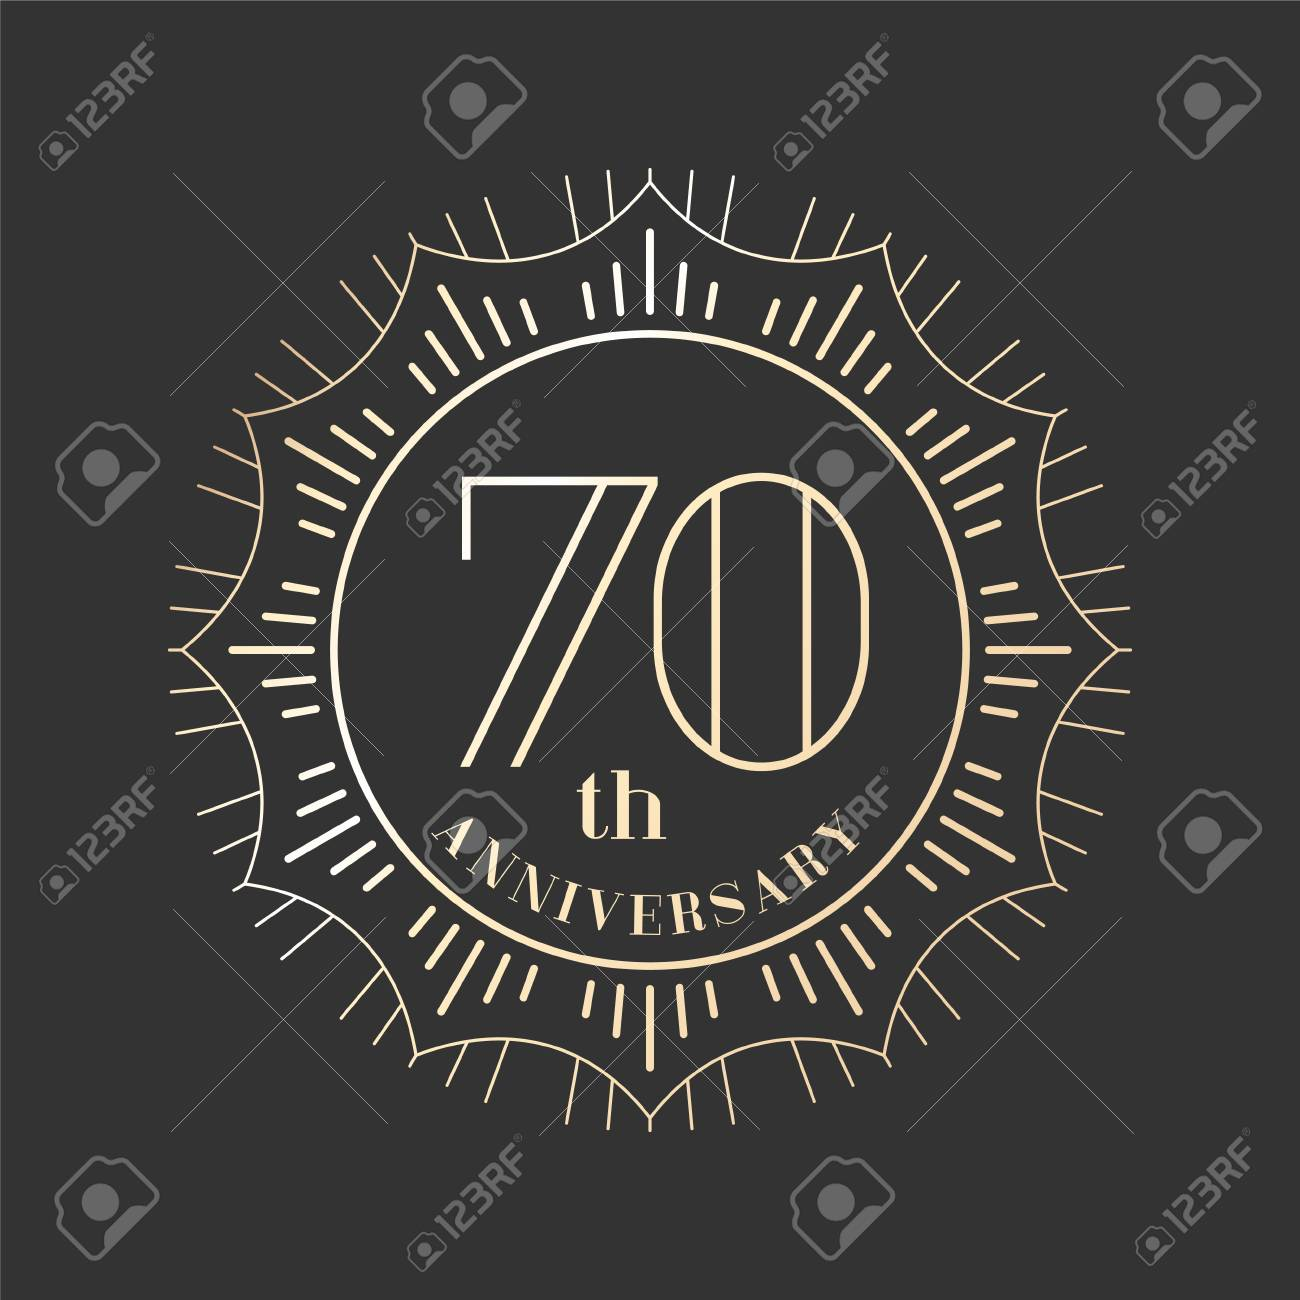 Graphic design element for 70th anniversary birthday card royalty graphic design element for 70th anniversary birthday card stock vector 71339892 biocorpaavc